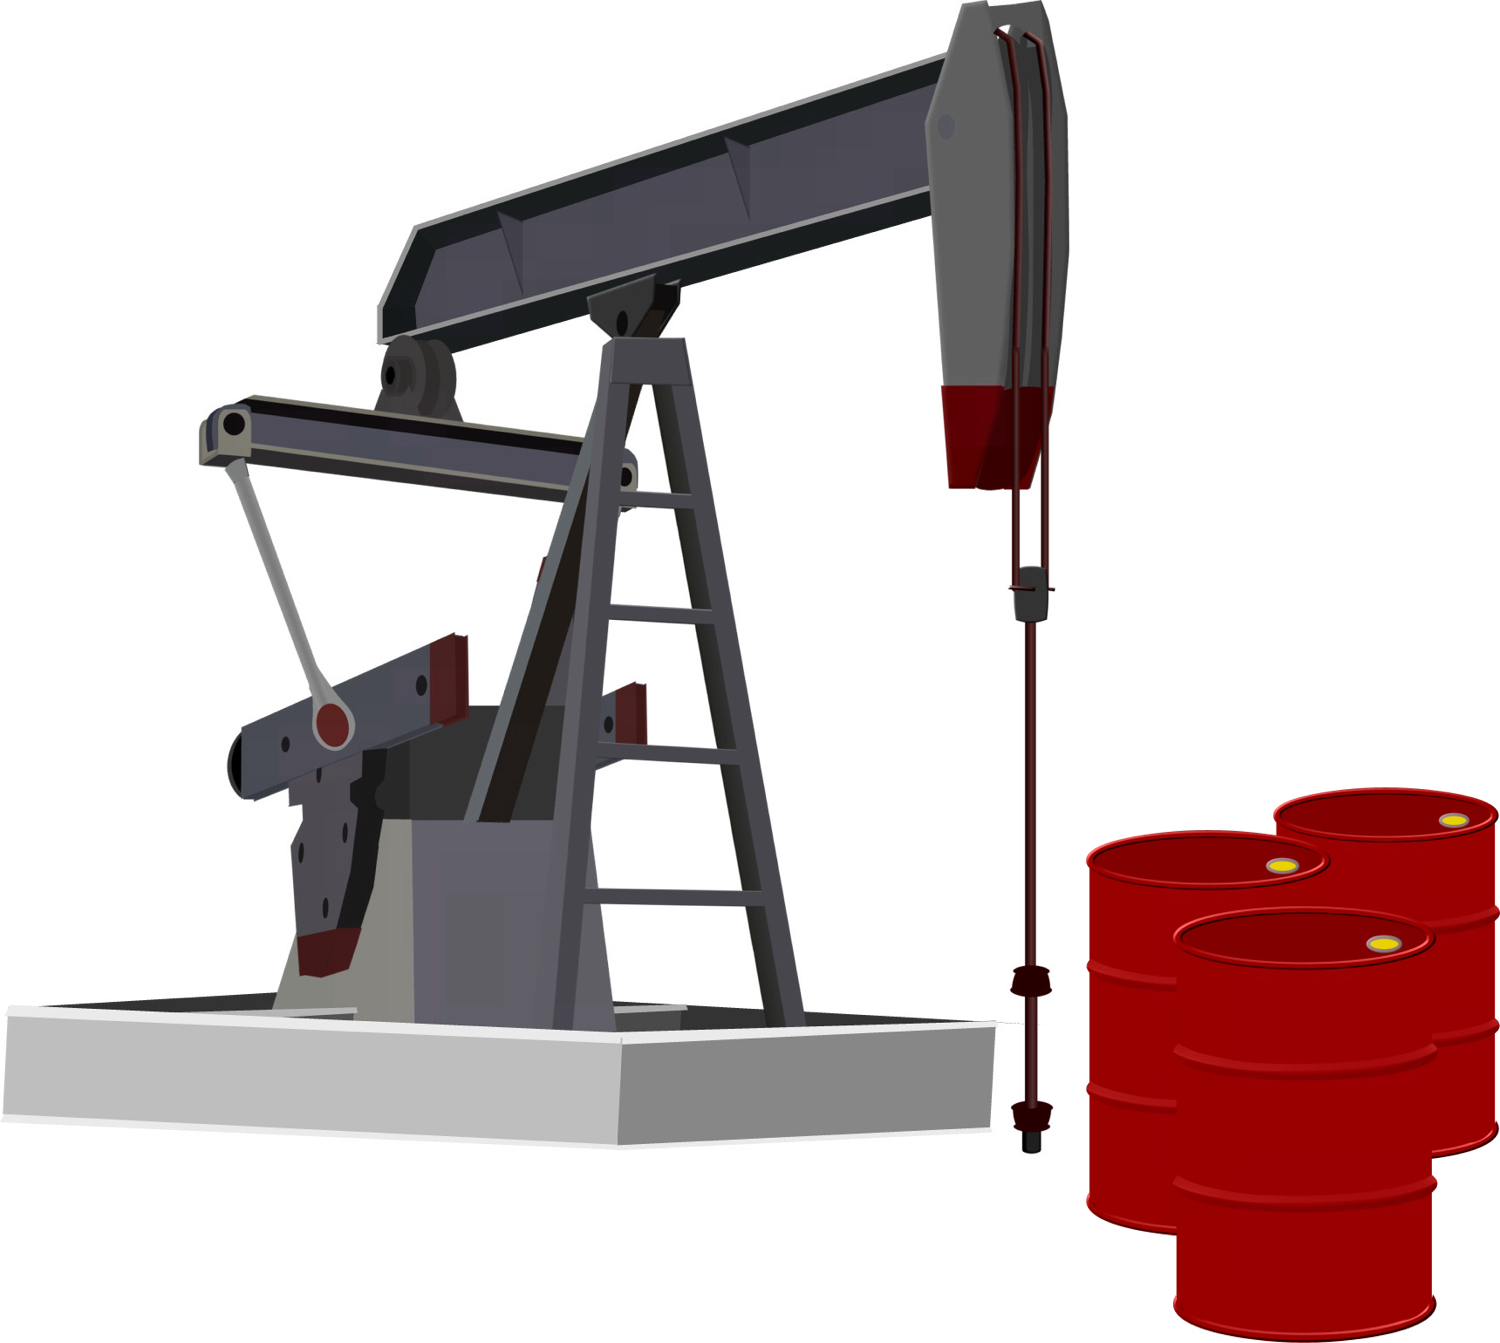 Free images at clker. Oil clipart petroleum barrel